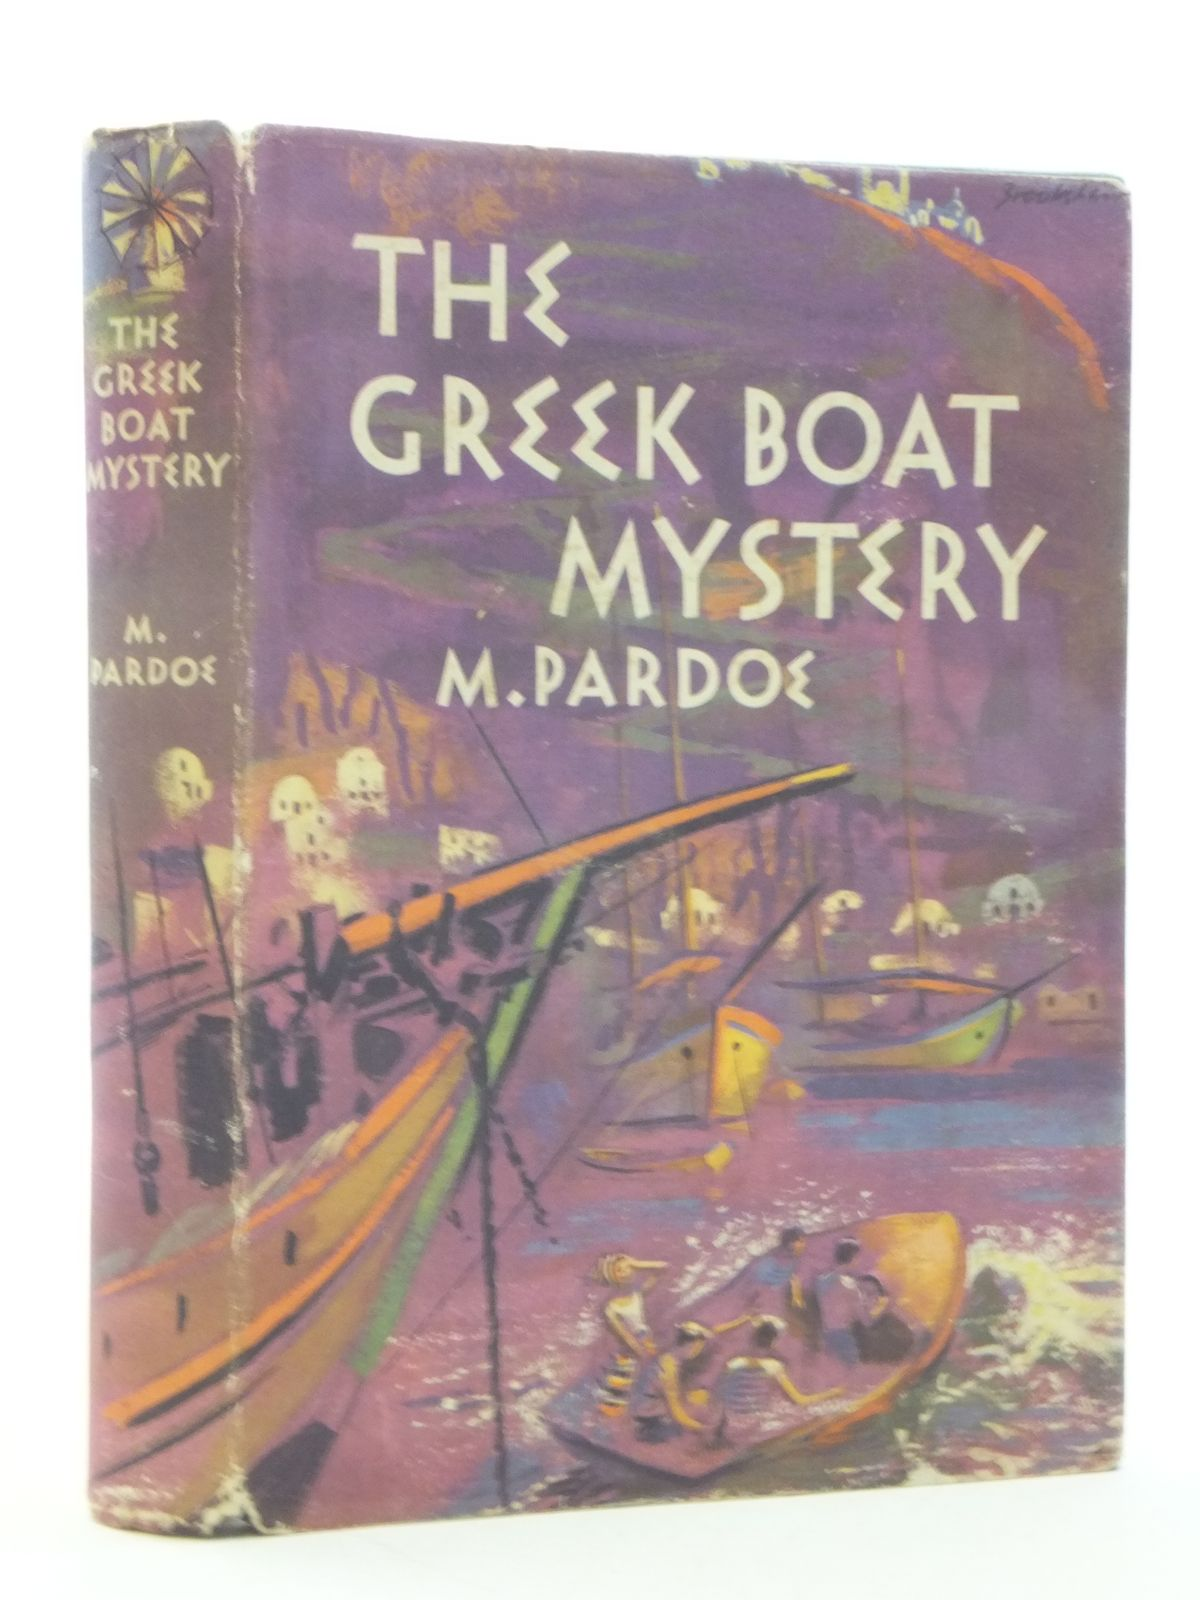 Photo of THE GREEK BOAT MYSTERY written by Pardoe, M. published by The Children's Book Club (STOCK CODE: 1605741)  for sale by Stella & Rose's Books